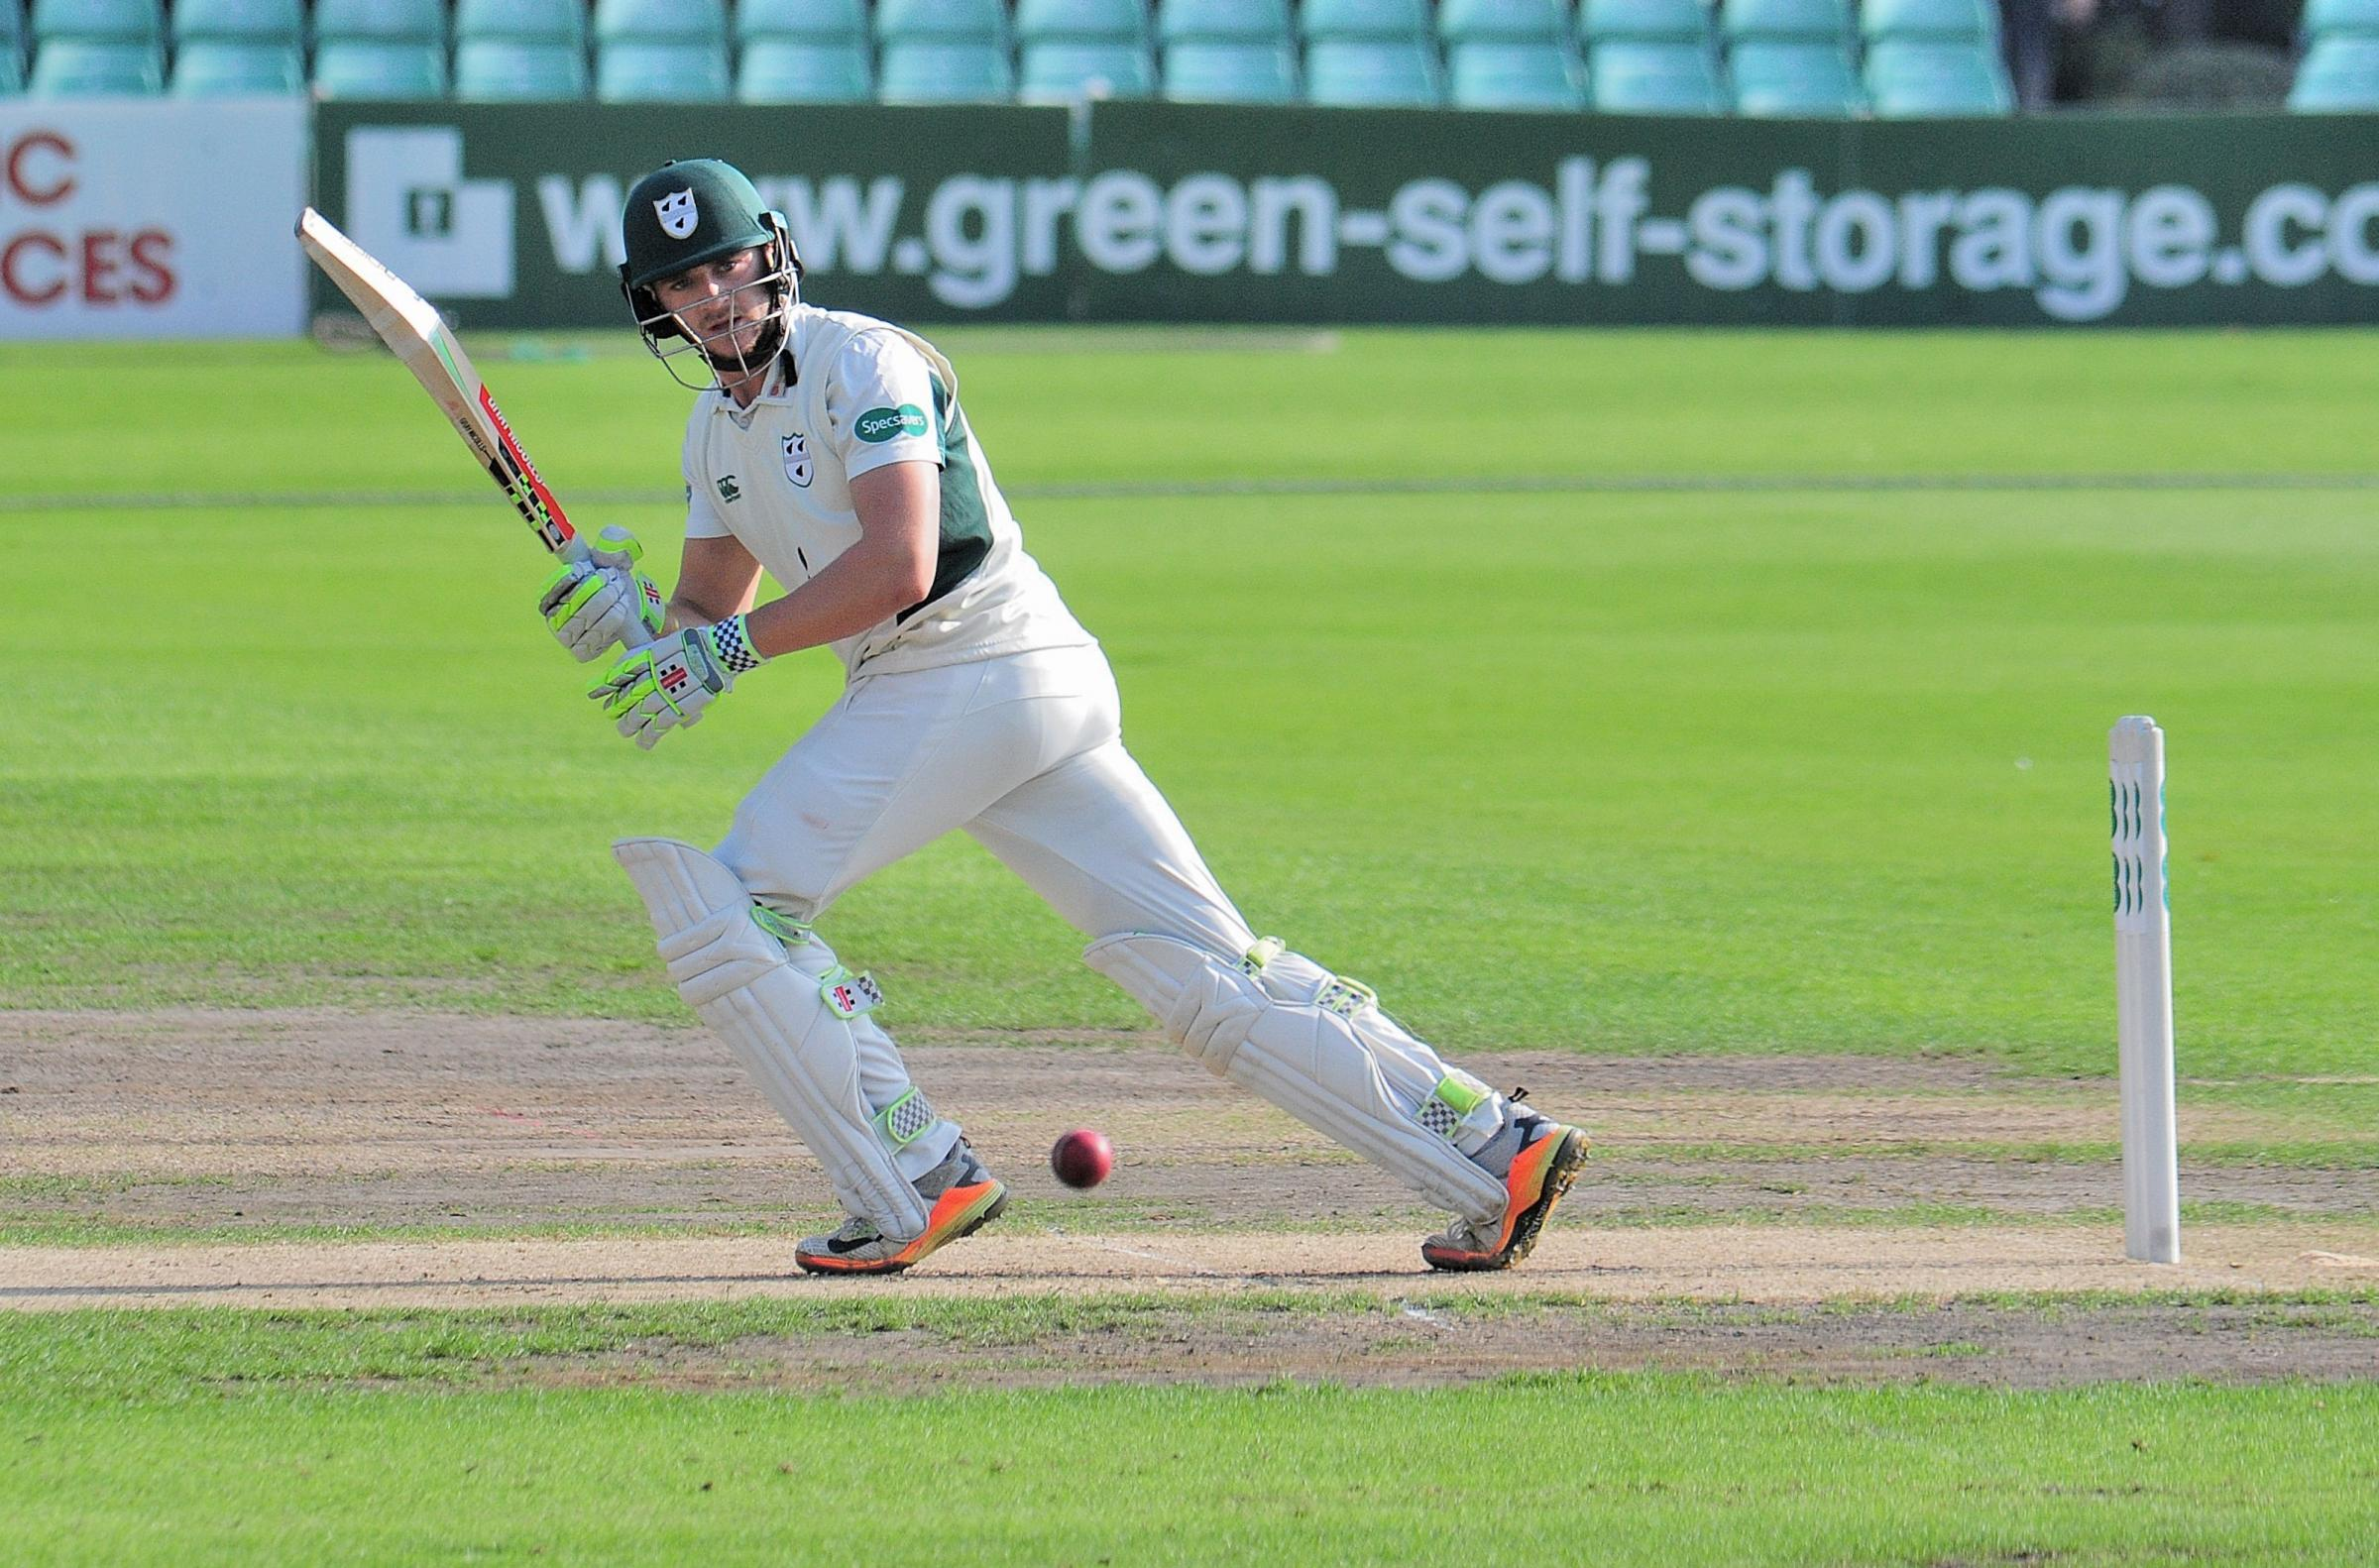 Cricket: Worcestershire's Joe Clarke hits 87 for England Lions